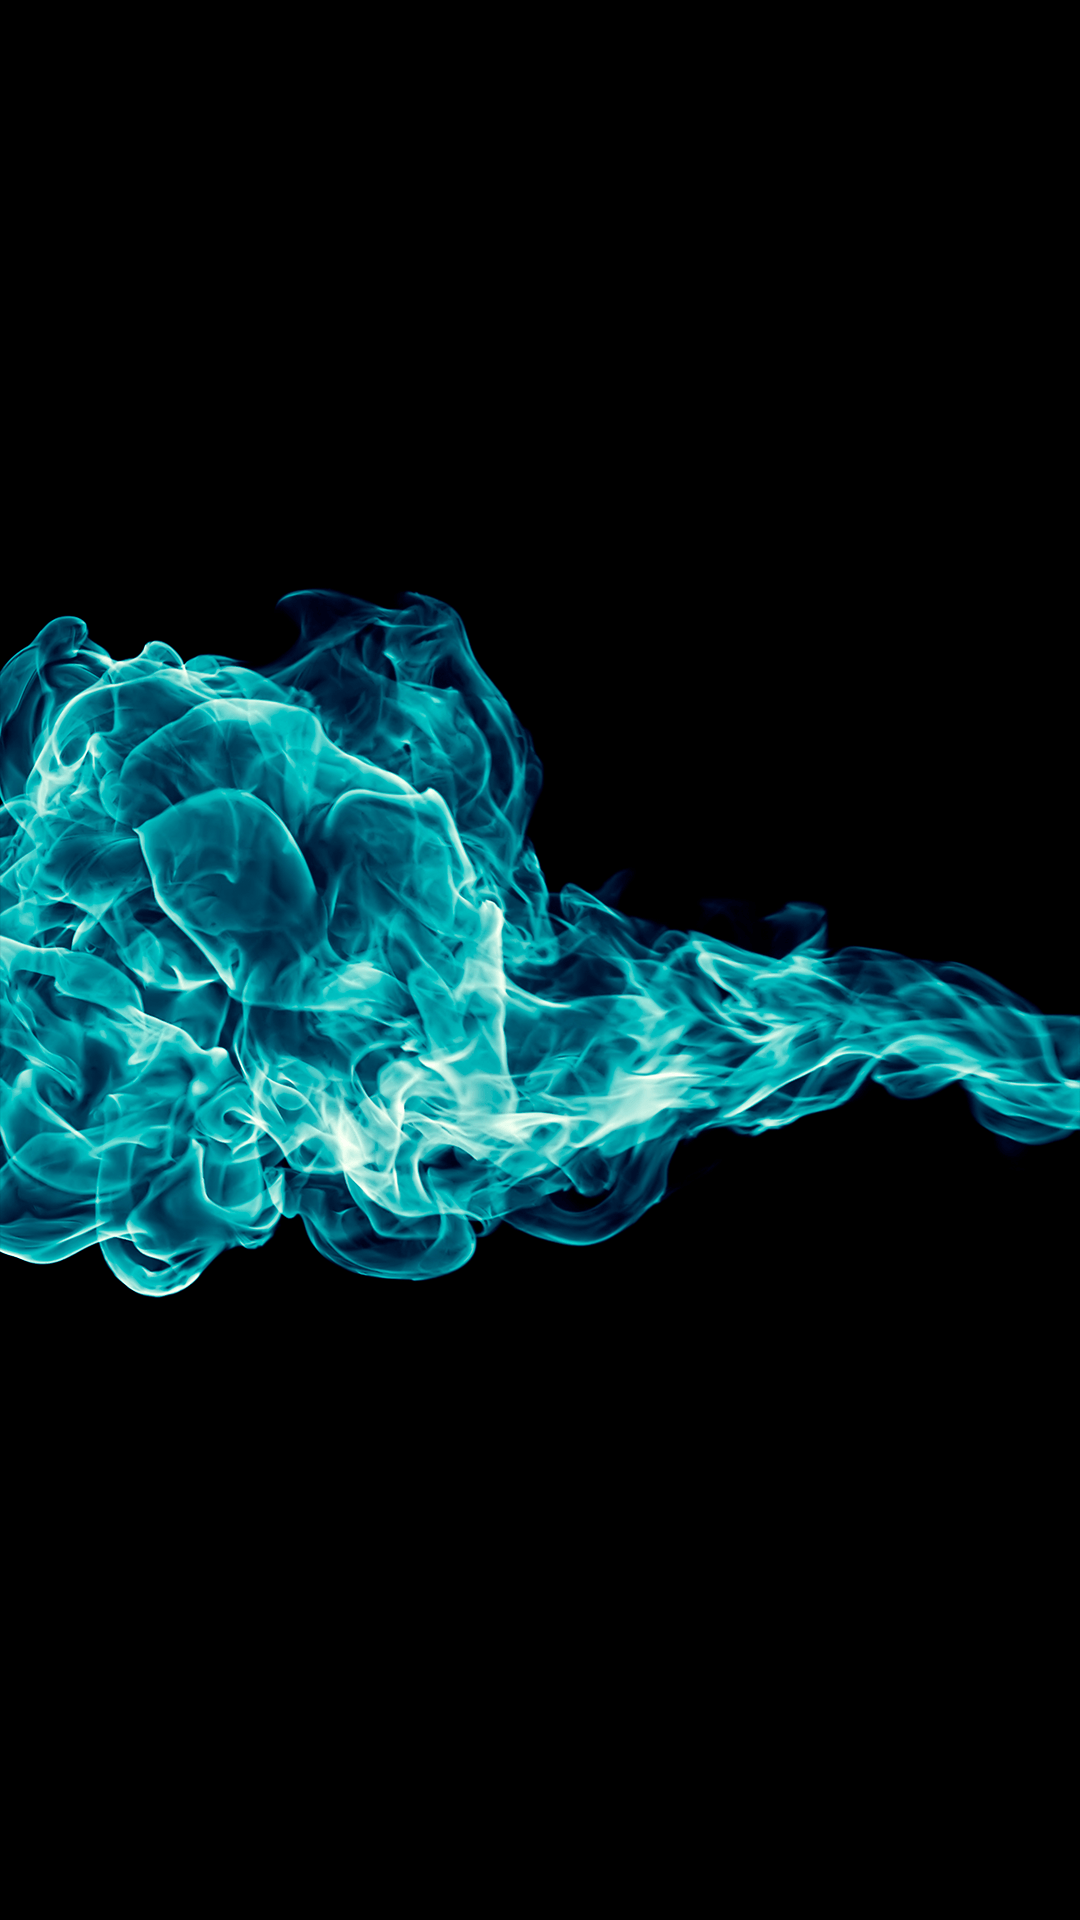 1080x1920 Download Our HD Blue Fire Wallpaper For Android Phones ...0042